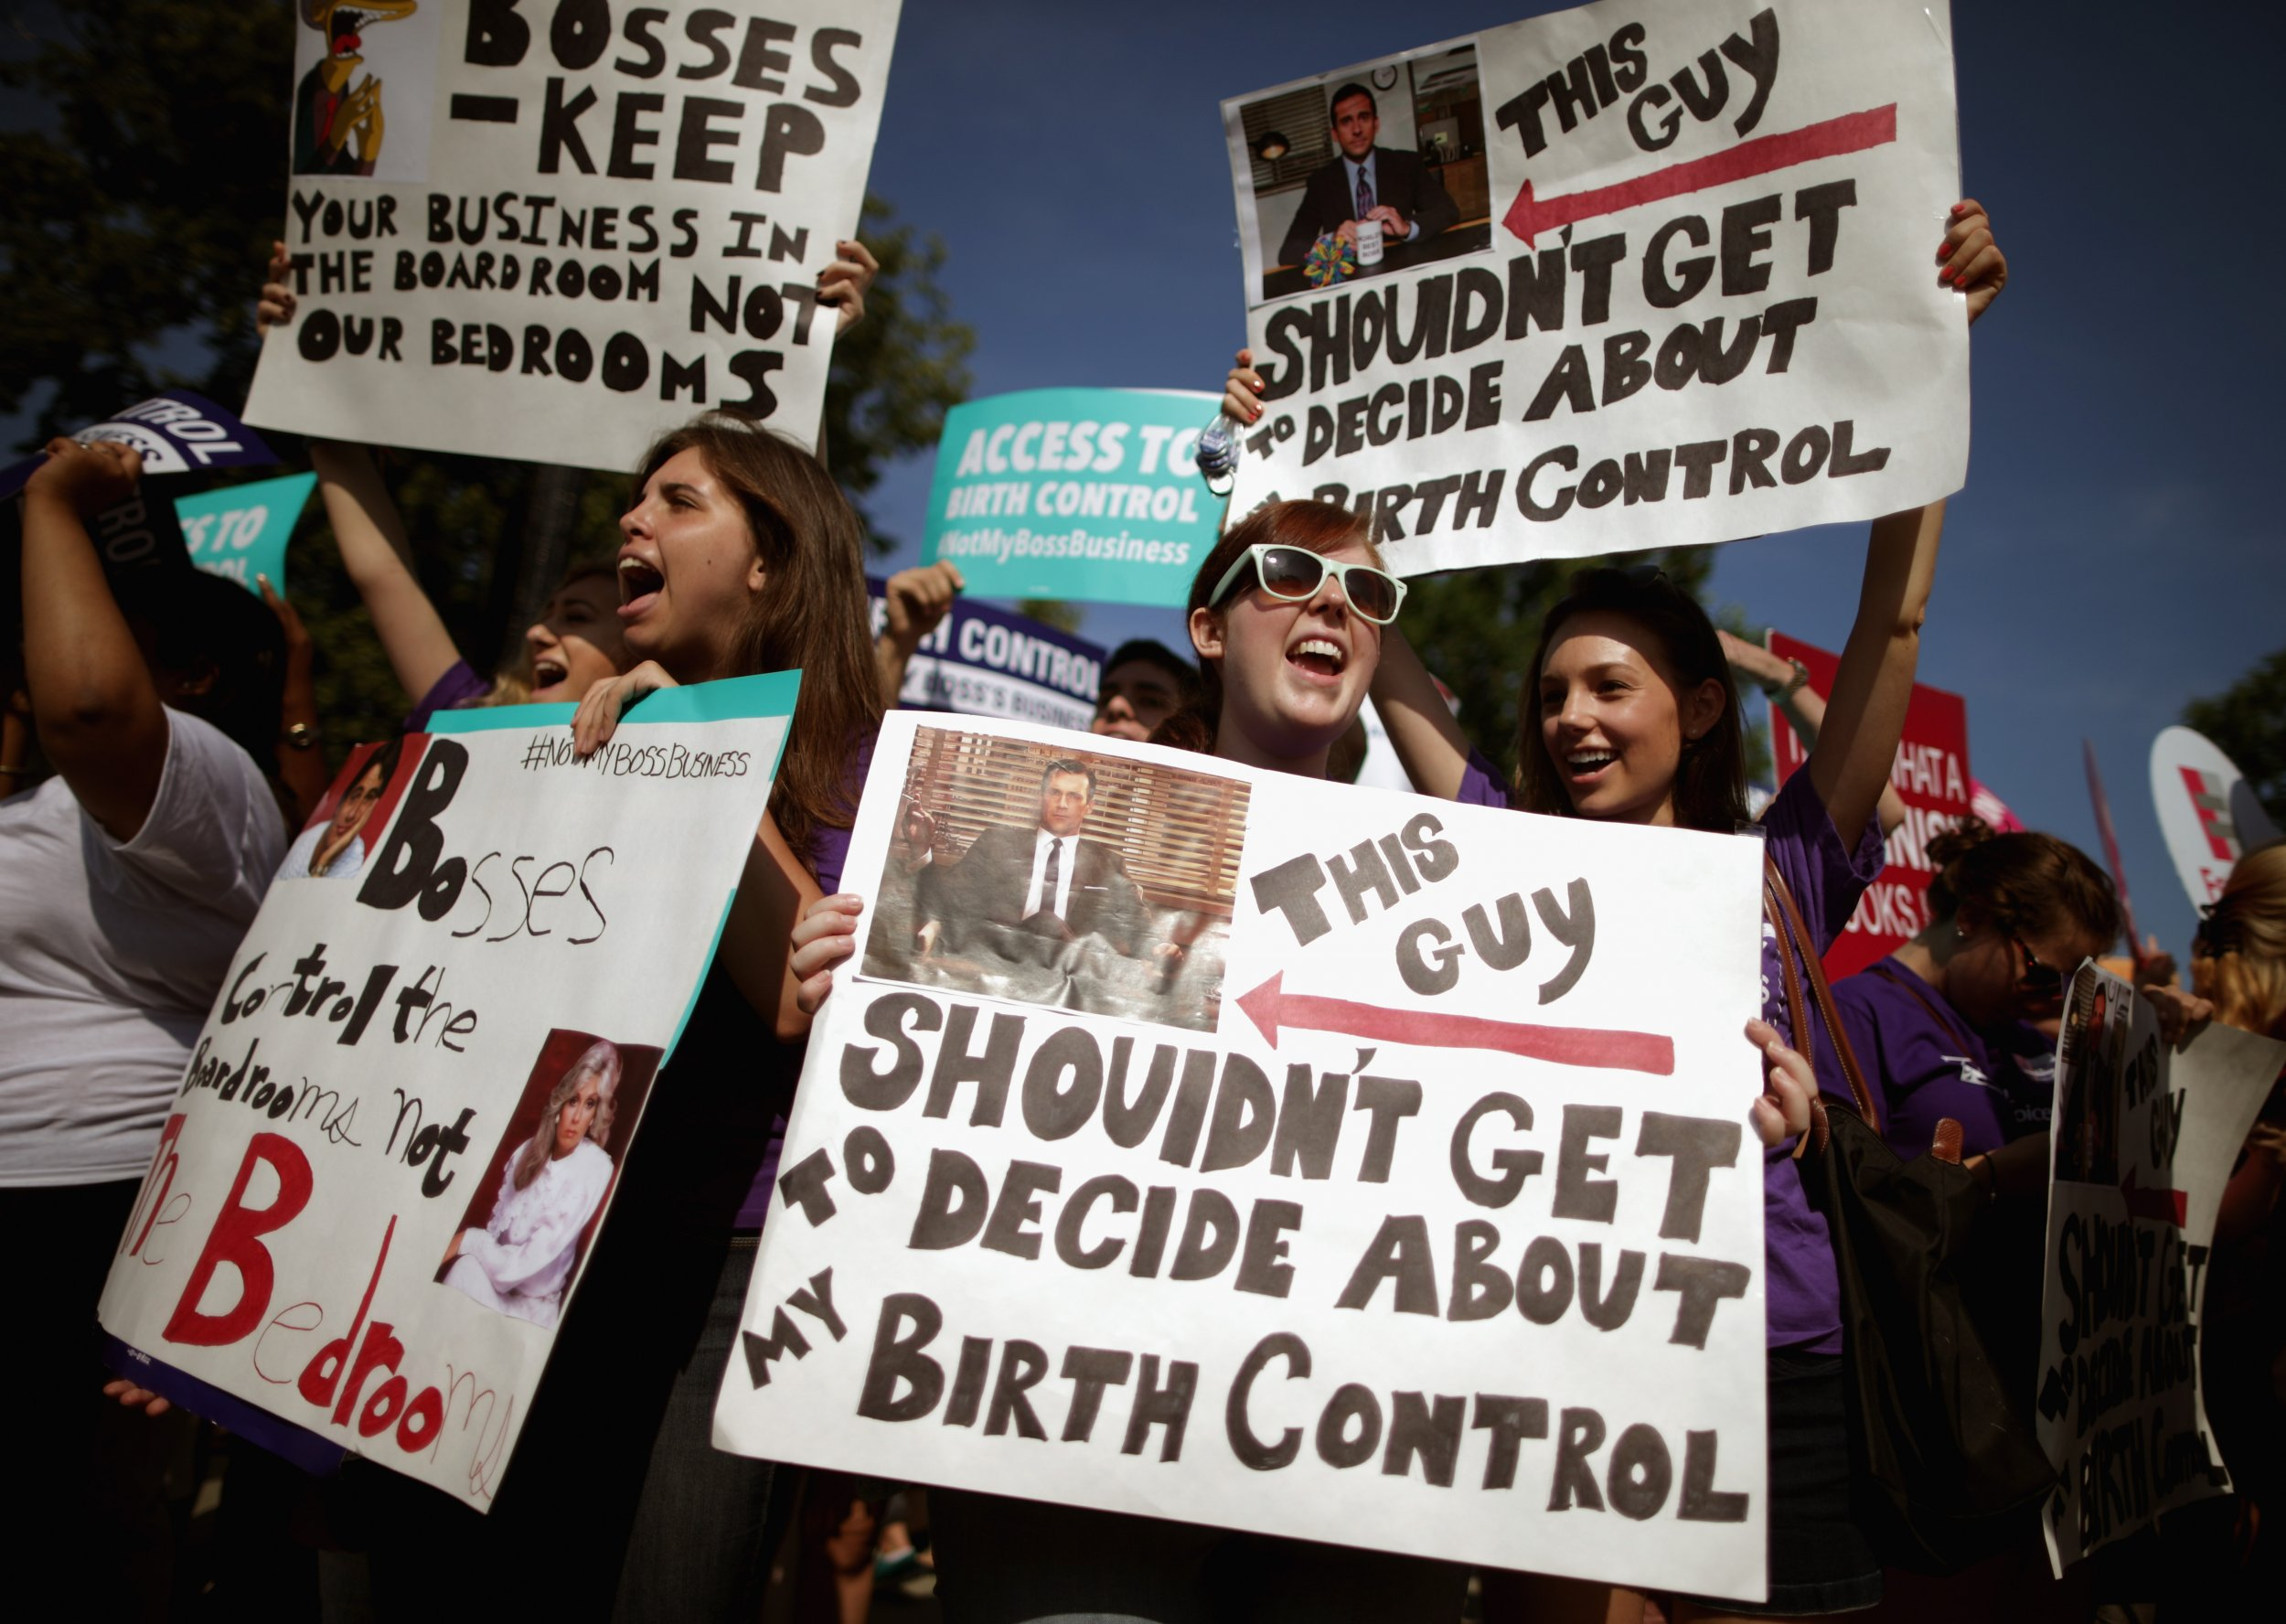 Birth Control, Donald Trump, Contraception, Injunction, Affordable Care Act, Obamacare